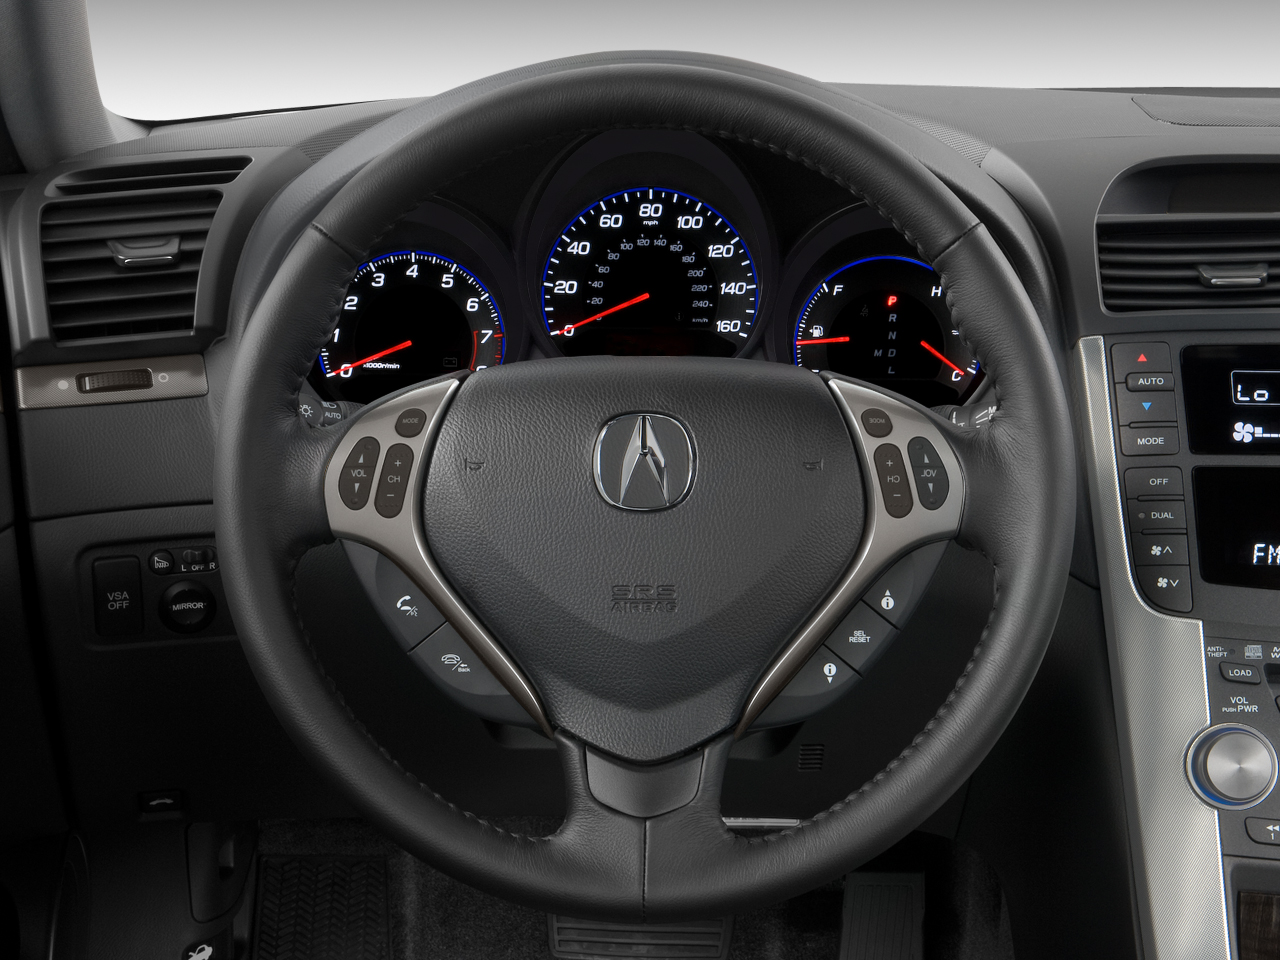 Acura TL Latest News Features And Reviews Automobile Magazine - Acura tl dashboard